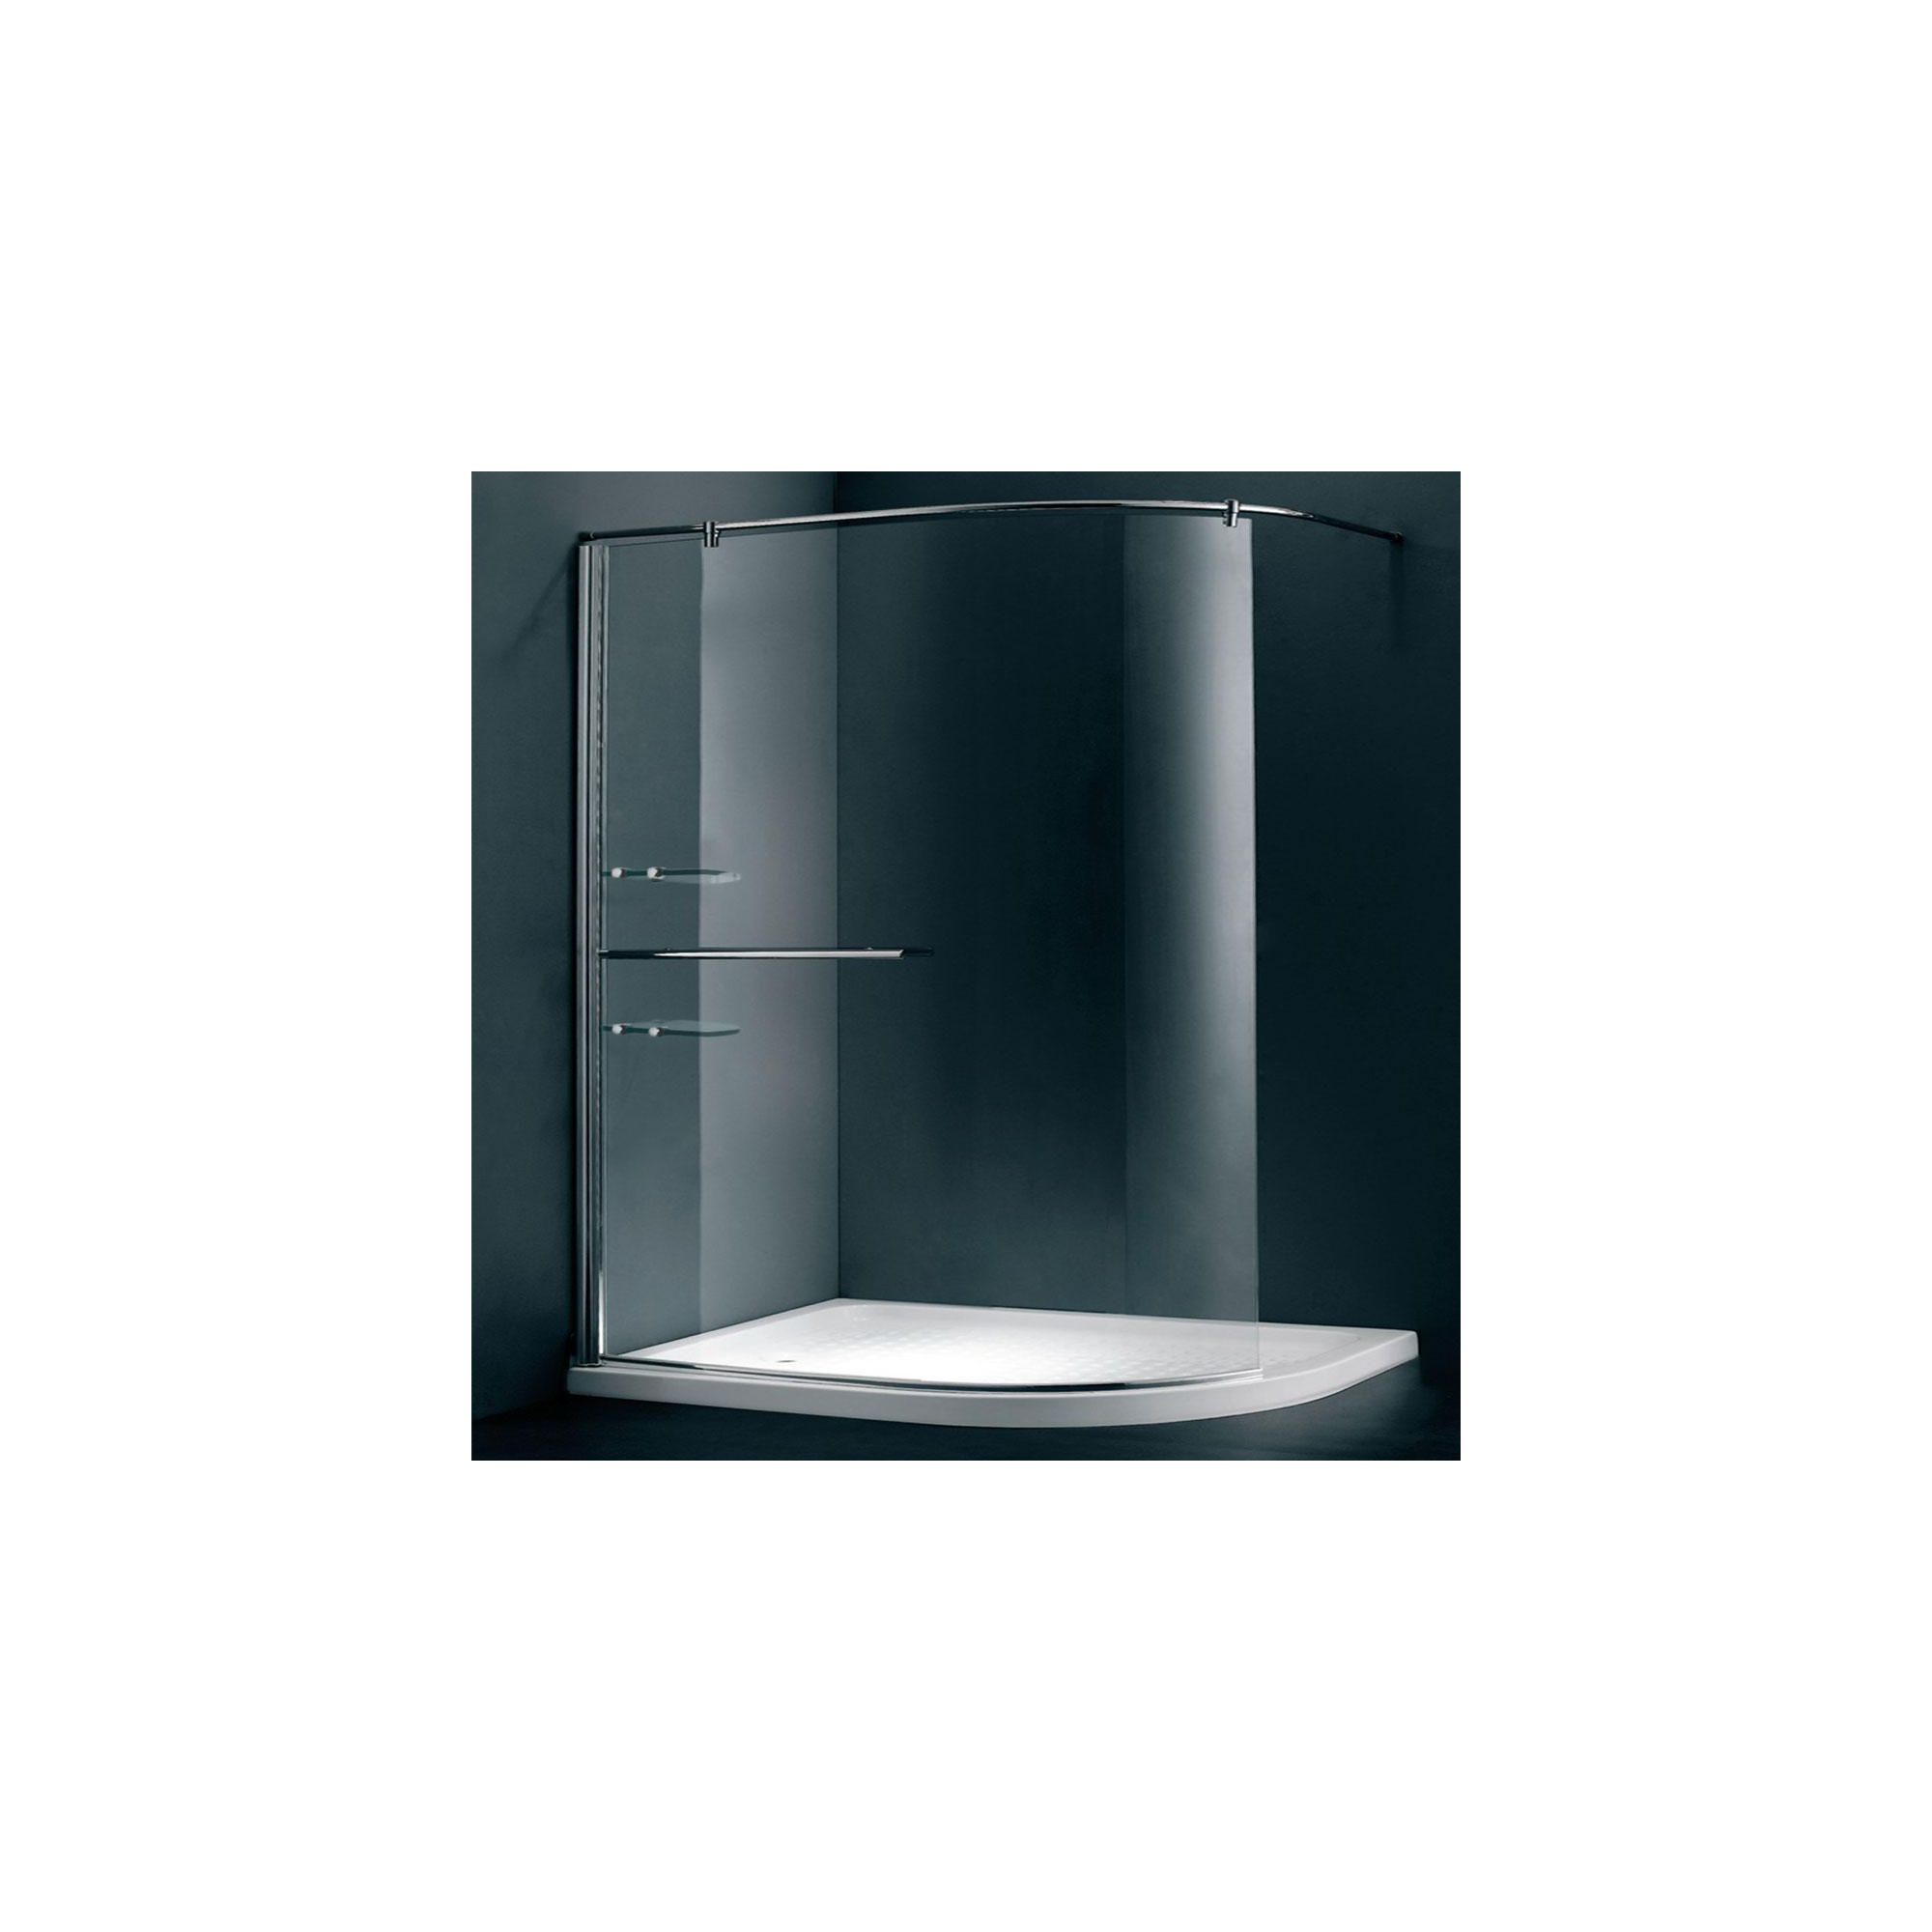 Duchy Style Curved Walk-In Wet Room Glass Shower Enclosure, 1200mm x 900mm, 6mm Glass, Low Profile Tray, Right Handed at Tesco Direct